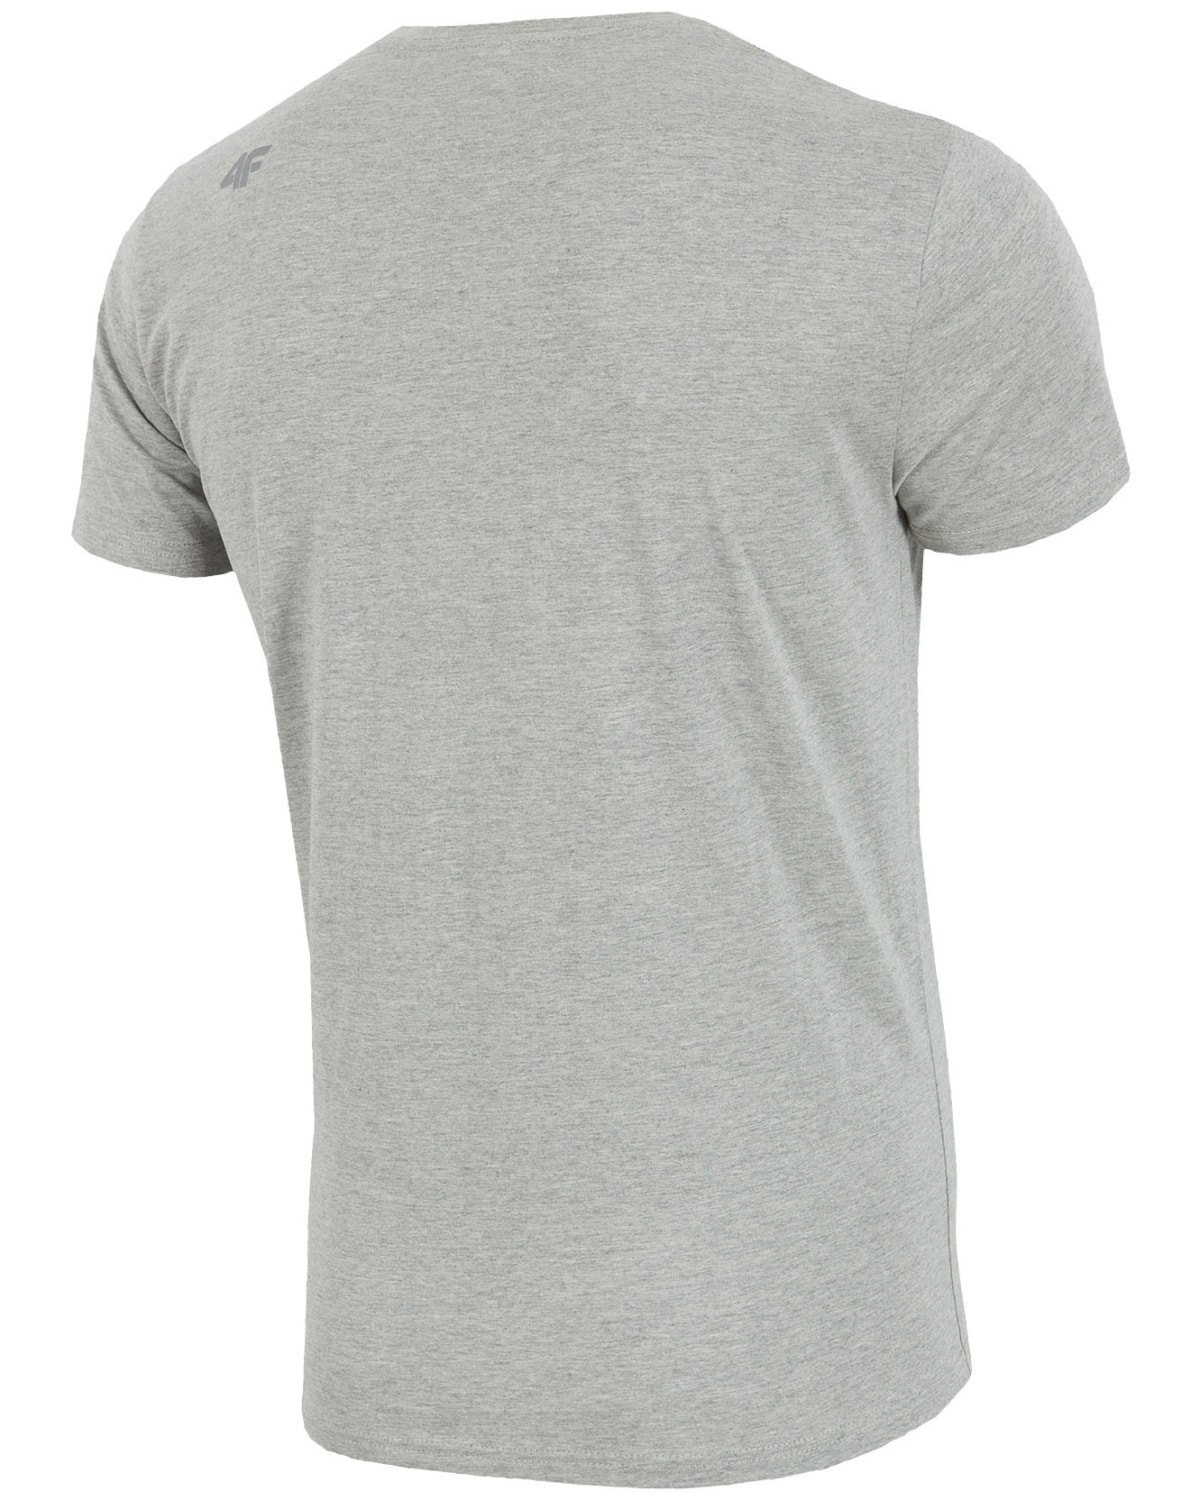 4F T-Shirt – Light Gray Melange